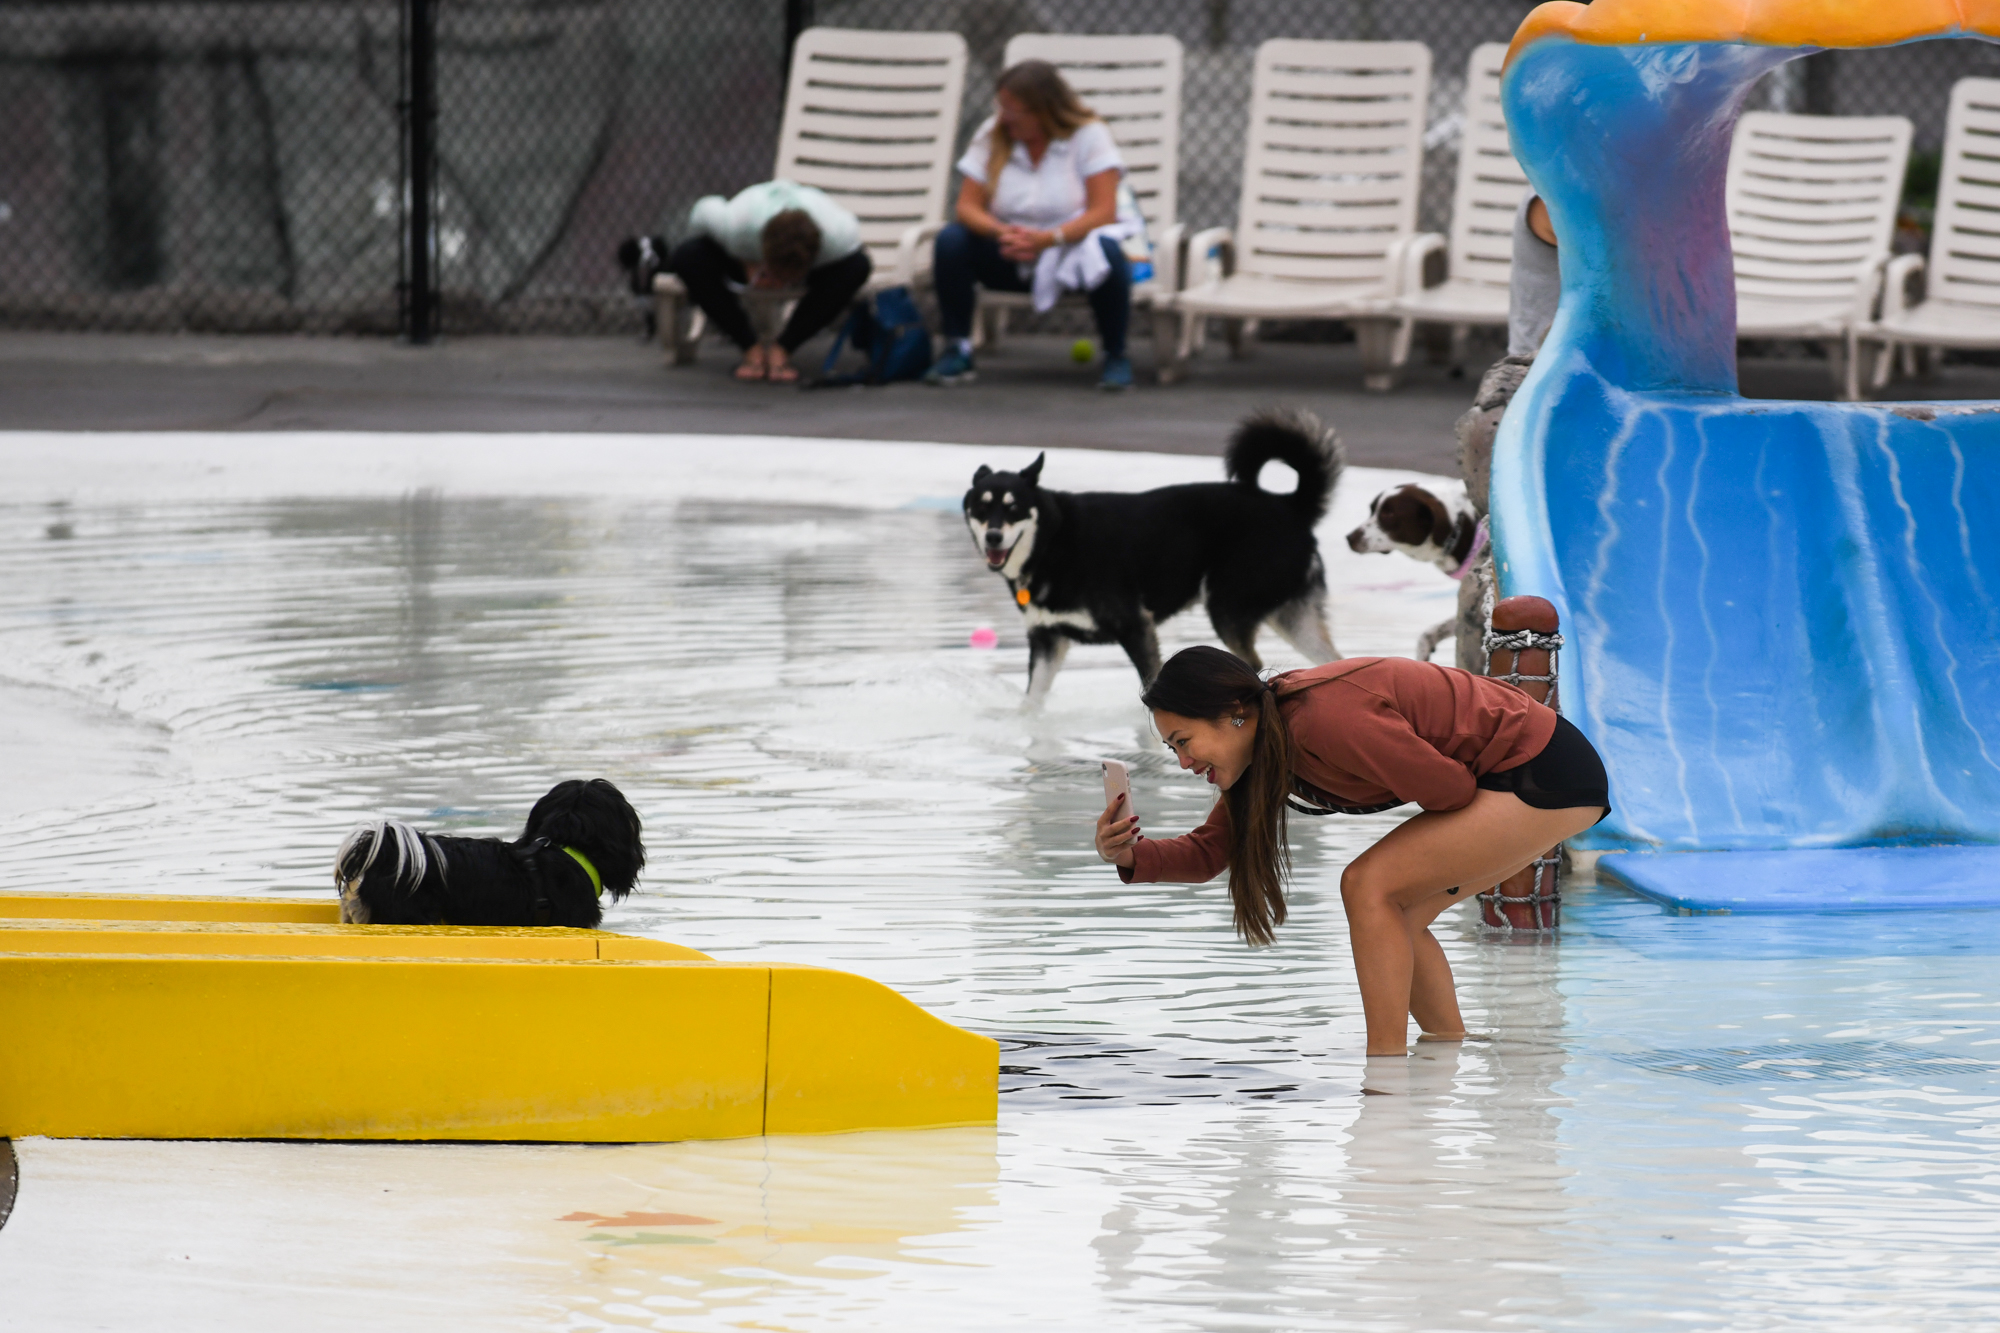 Well gosh darnit if this isn't the wildest thing Wild Waves has ever done! The theme & water park joined up with Seattle Humane to invite dogs and their owners to celebrate the end of summer at their first annual PAW-POOL-OOZA. While it's still technically summer, don't tell the weather - but in typical PNW form that didn't stop doggos and their families from splashing around the wave pool in delight.{ }The dog swim only celebration included special treats for pooches and their humans with a Yappy Hour, specialty food, vendors, live music and more. (Image: Chona Kasinger / Seattle Refined){ }